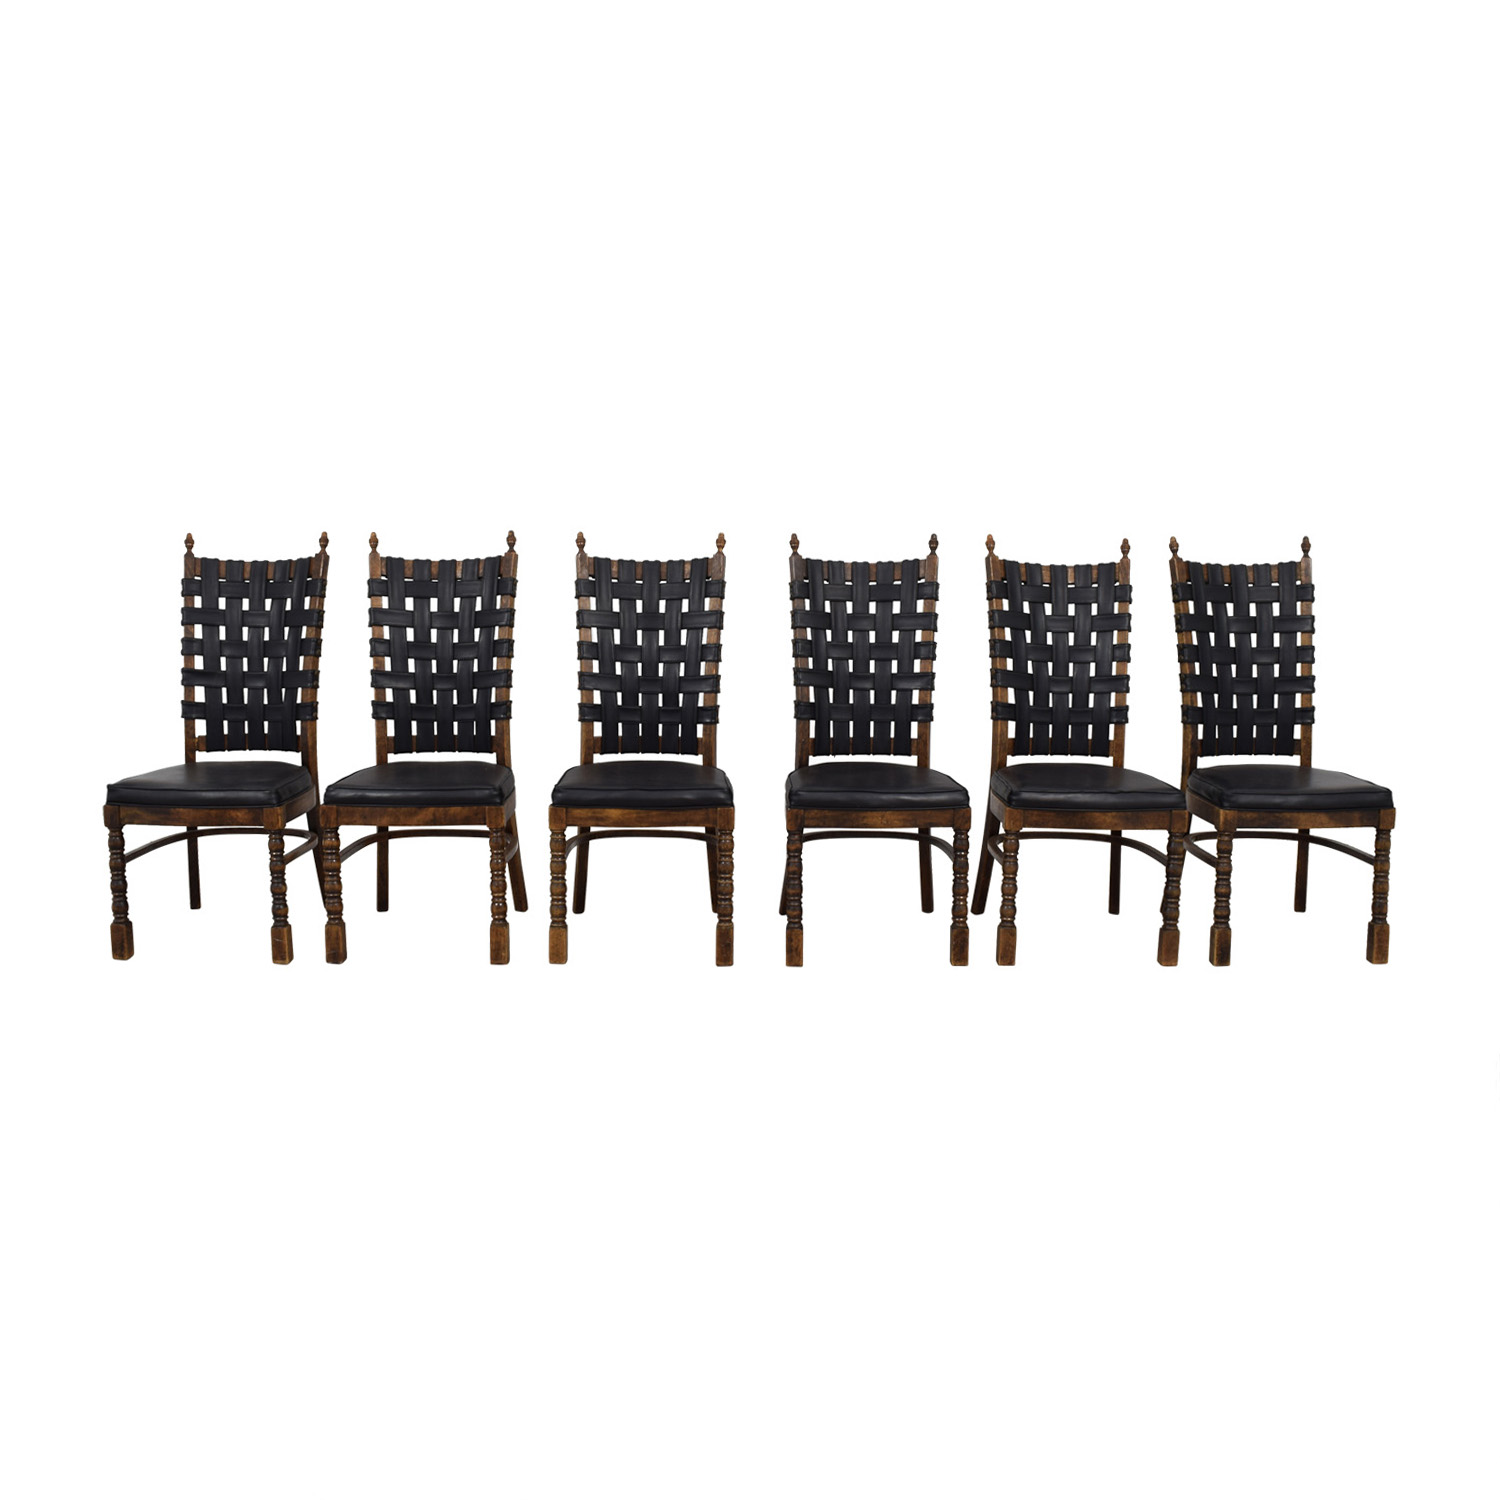 Bloomingdales Wooden Chair Set / Sofas